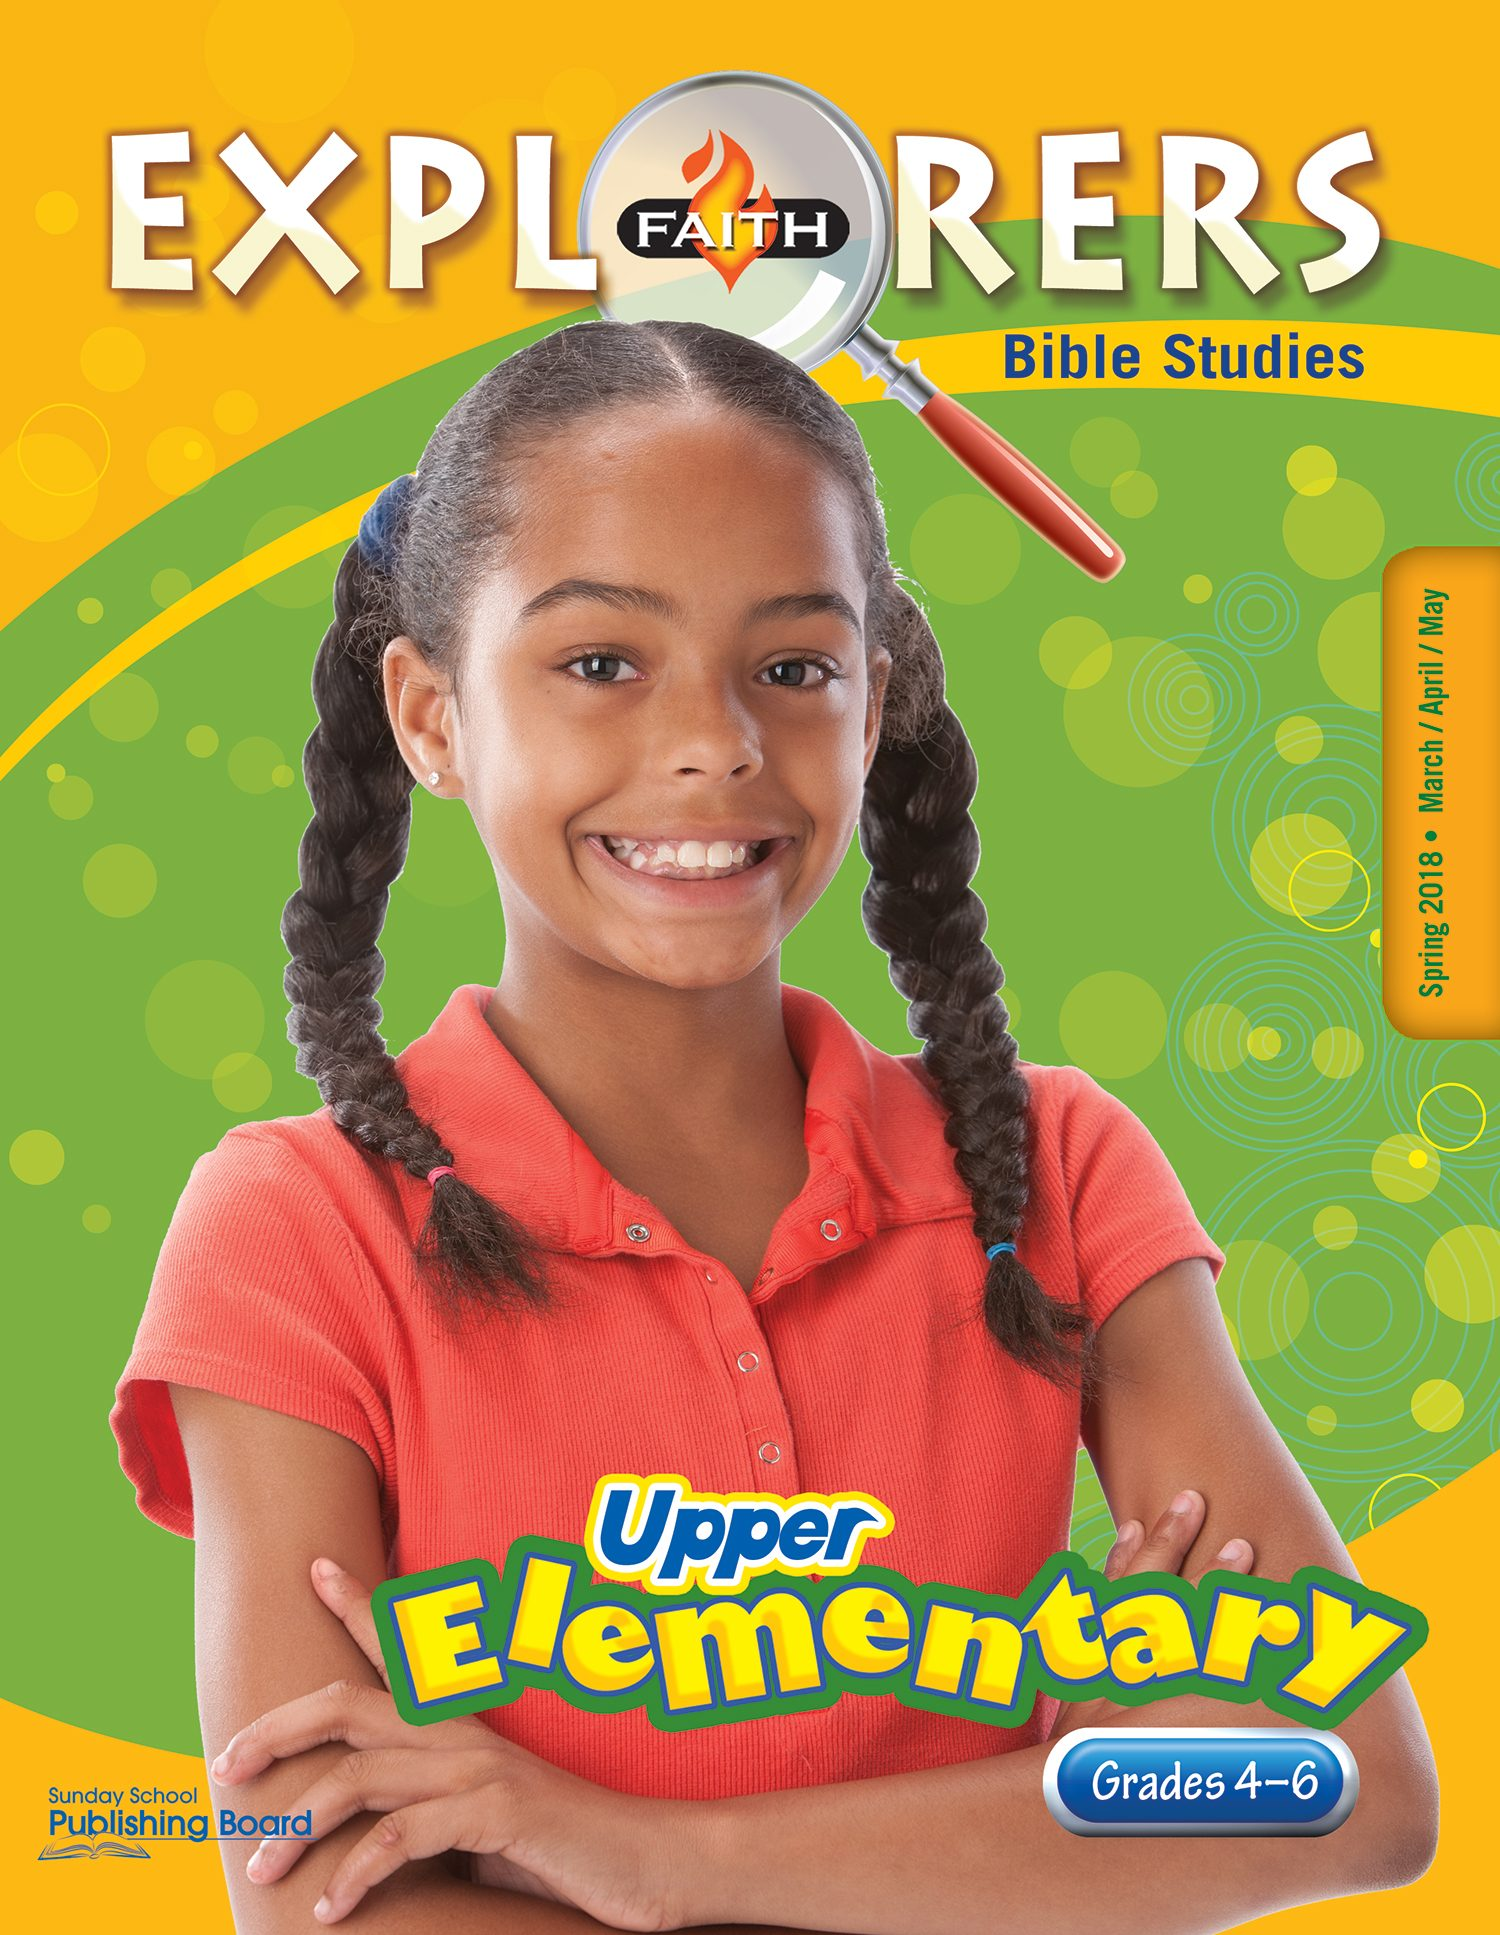 Faith Explorers Bible Studies, Upper Elementary for Grades 4-6 (Spring 2018)-Digital Edition